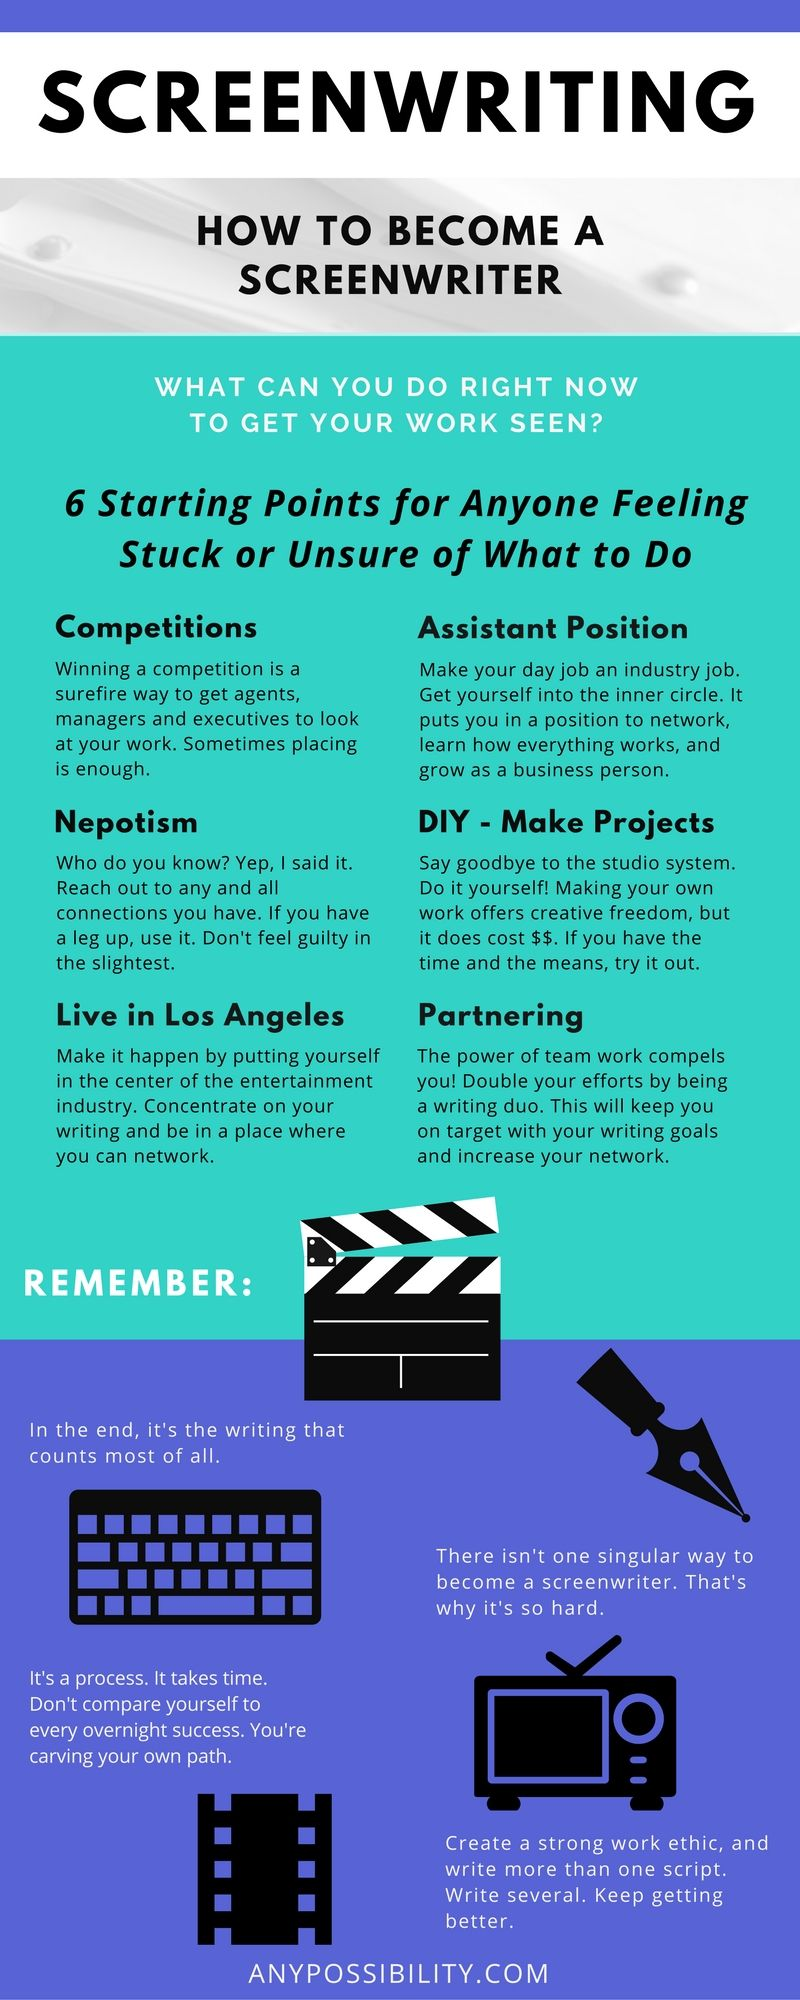 How to Become a Screenwriter: 12 Starting Points • Any Possibility